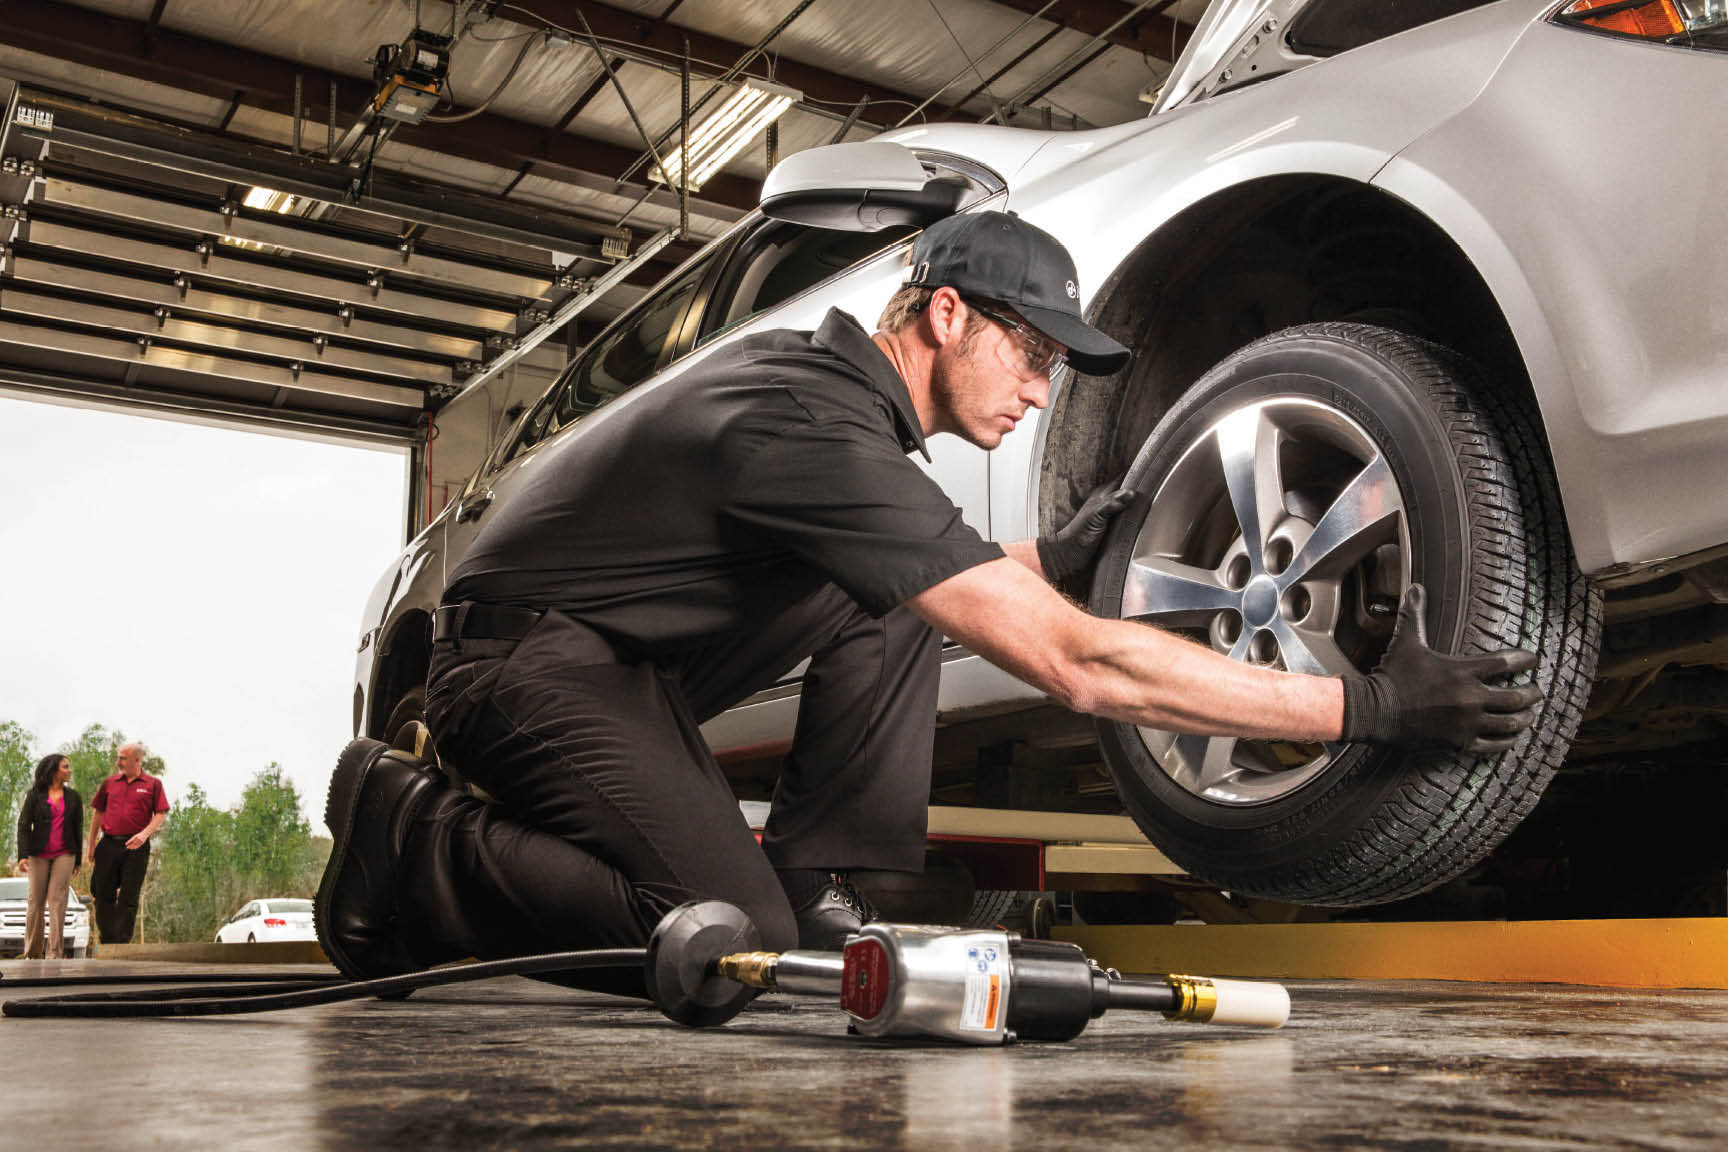 We check car tire pressure as part of our Jiffy Lube maintenance